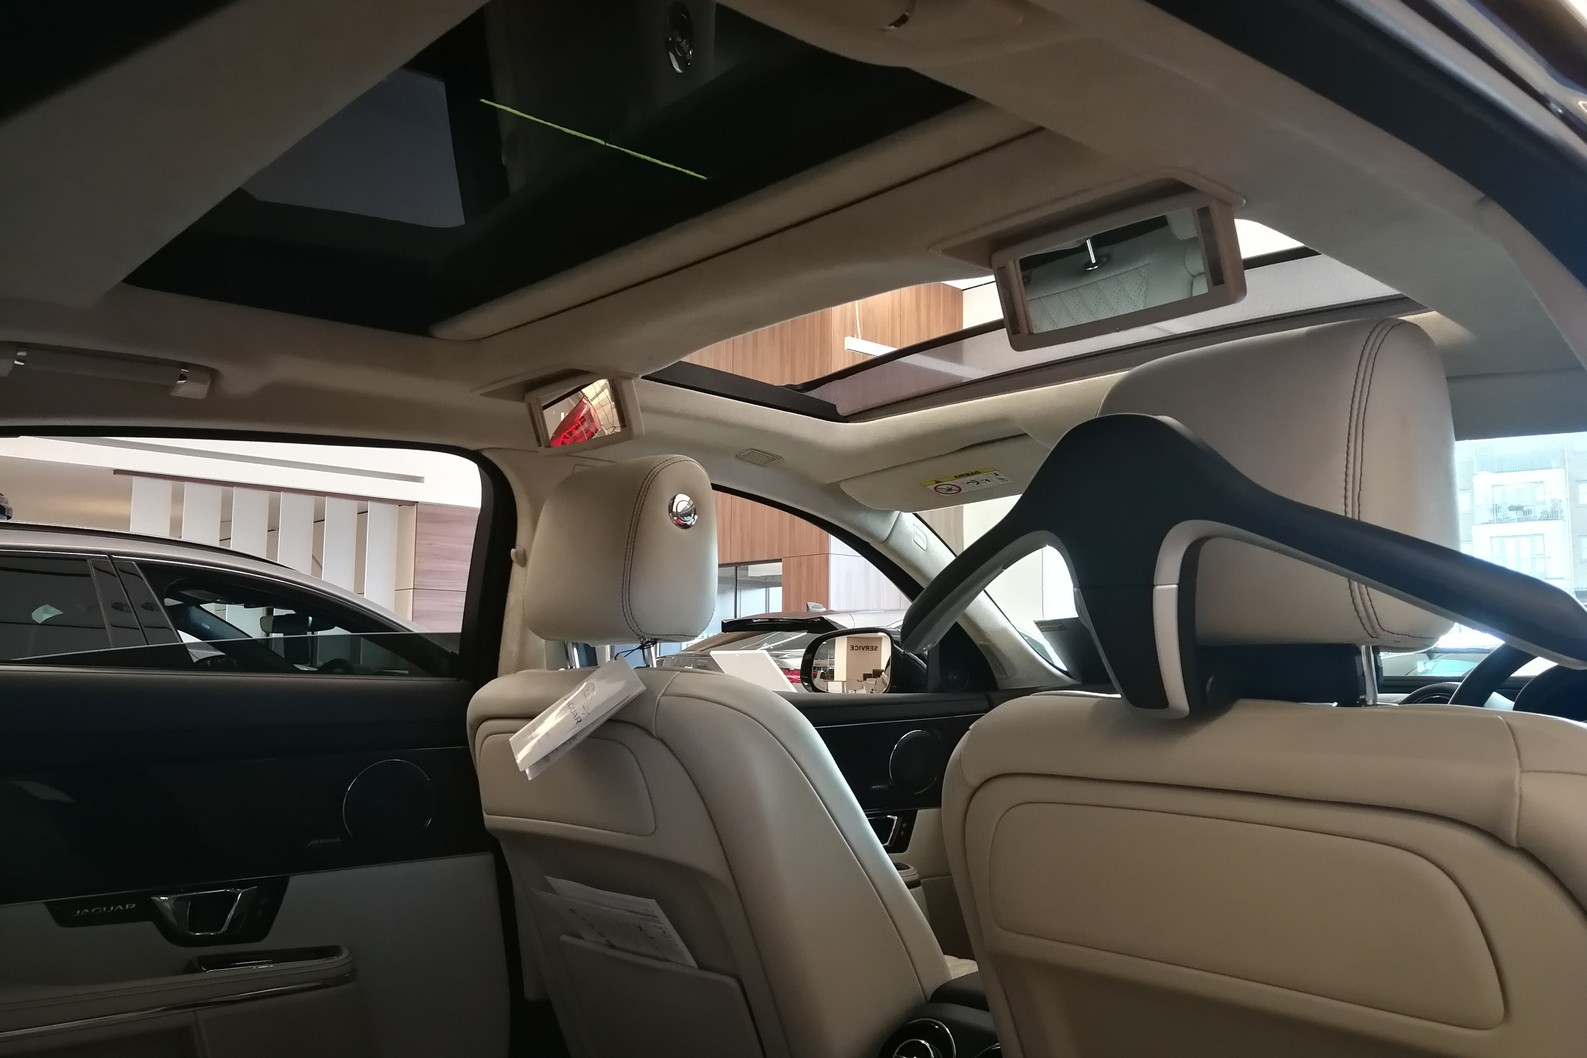 Jaguar XJ 3.0d V6 XJ50 LWB - Delivery Mileage - Surround Camera - Heated and cooled S image 20